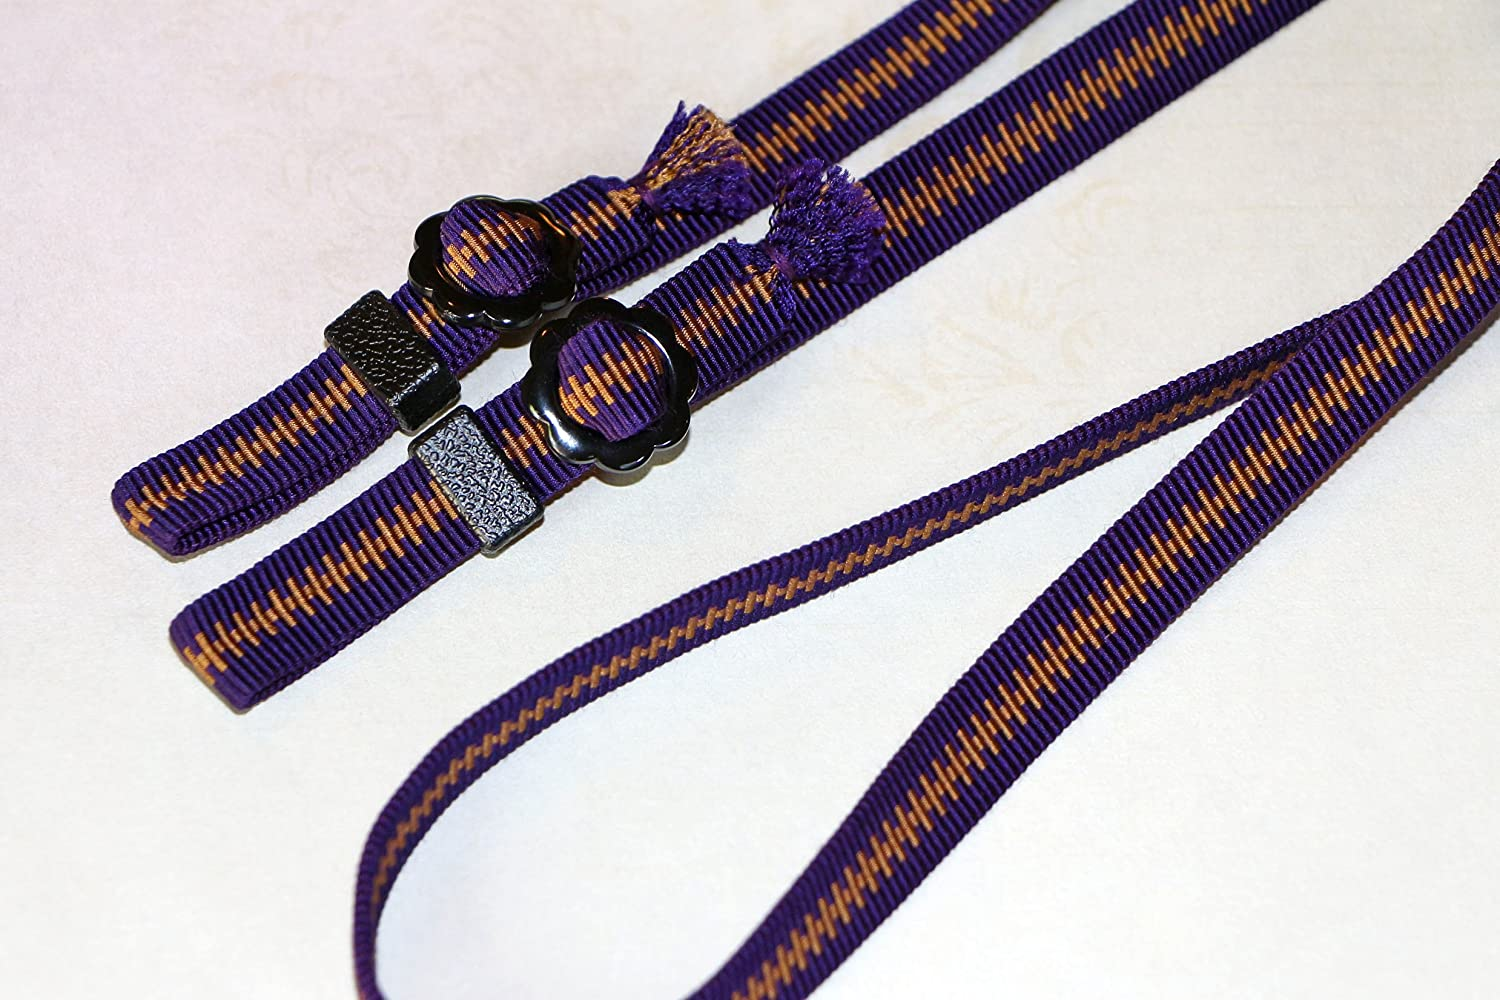 Samurai-ribbon 47-Inch Purple Polyphonic and Cotton String ZIN DESIGN OFFICE Kumihimo Camera Strap with Paulowniacase